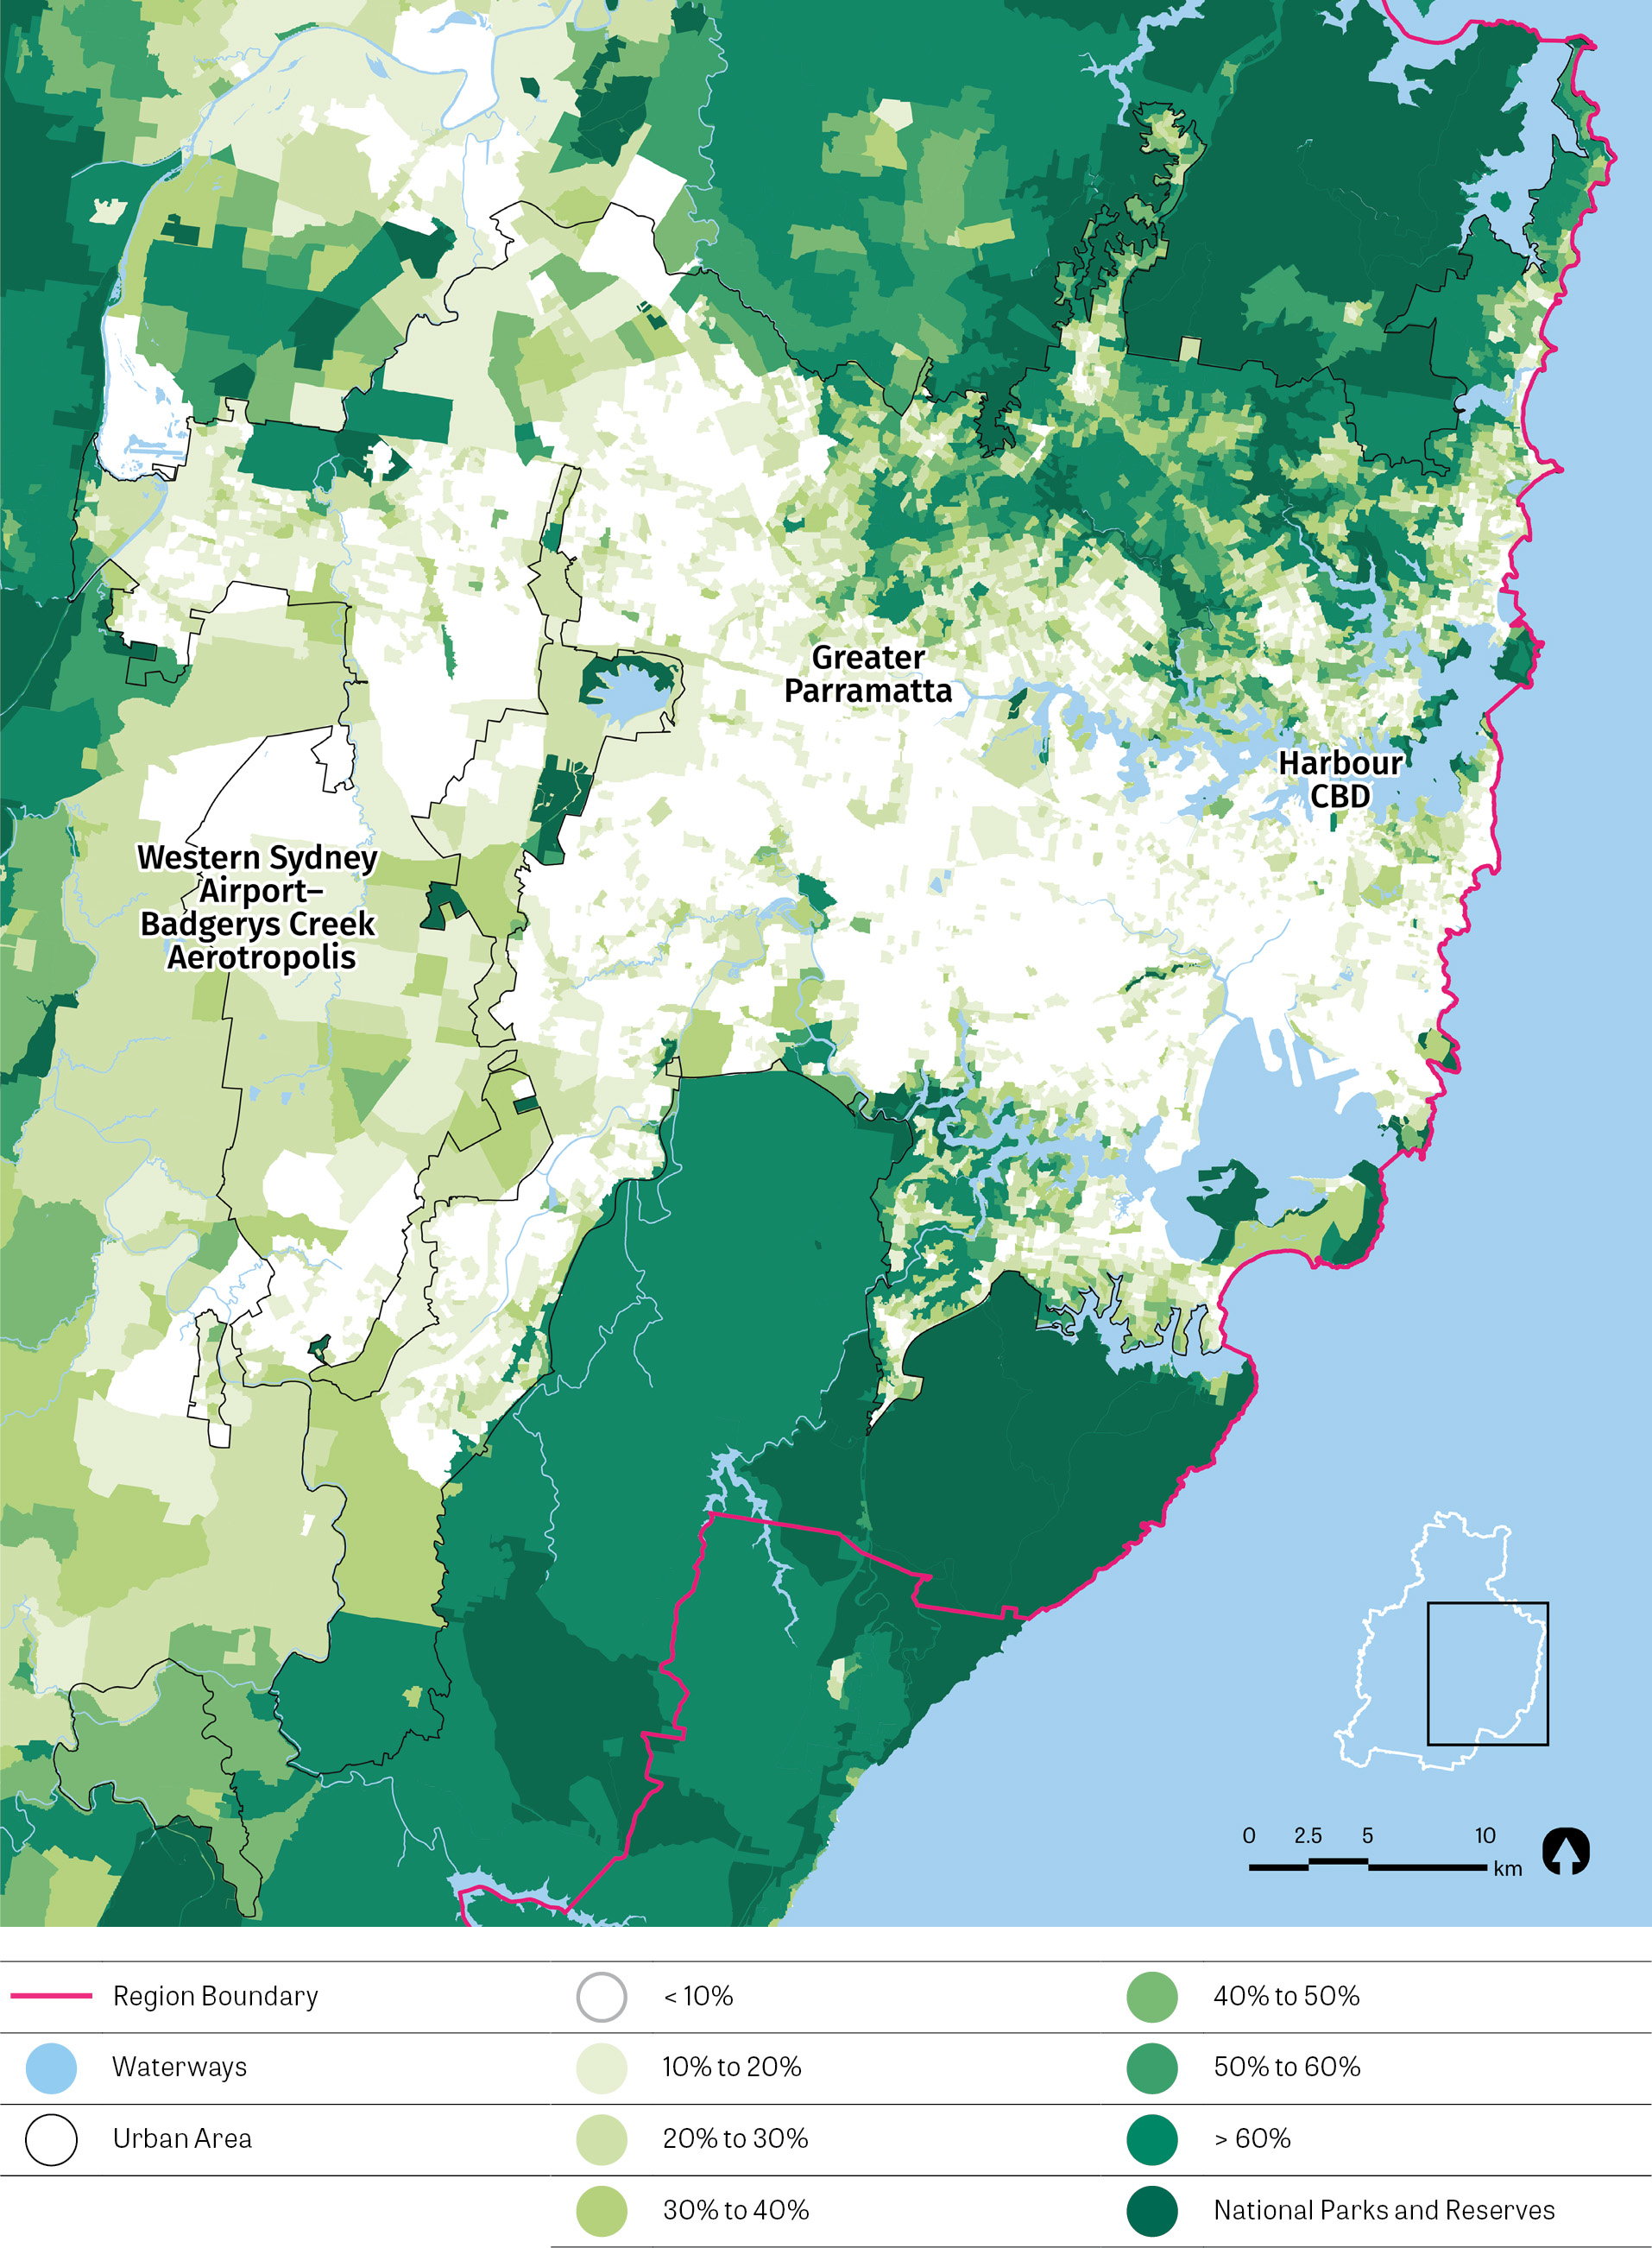 Map showing Greater Sydney tree canopy cover as at 2011. Cover ranges from 0% to >60% and National Parks and Reserves.